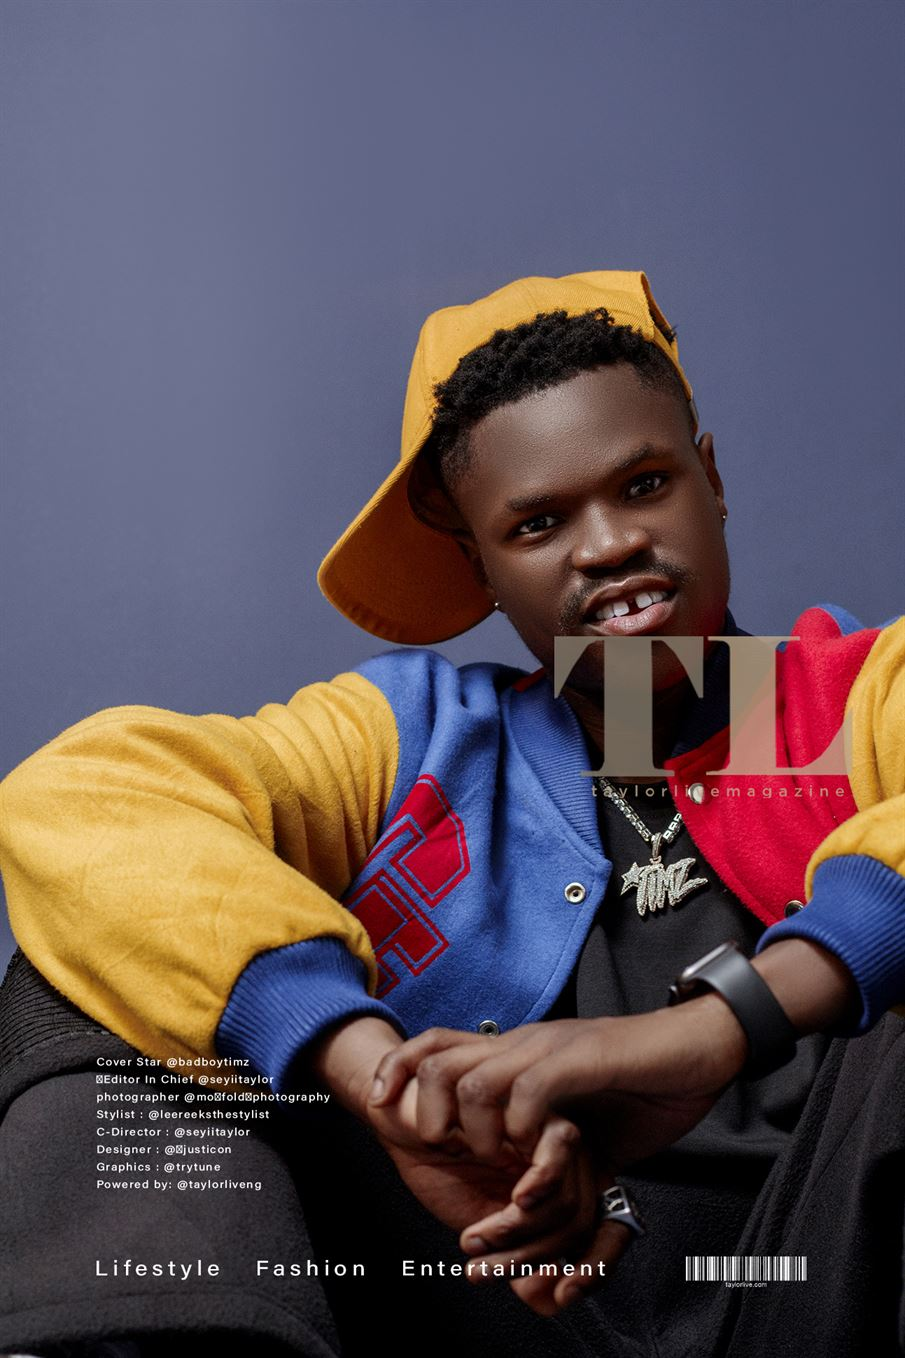 Bad Boy Timz Covers Taylorlive Magazine's Latest Issue